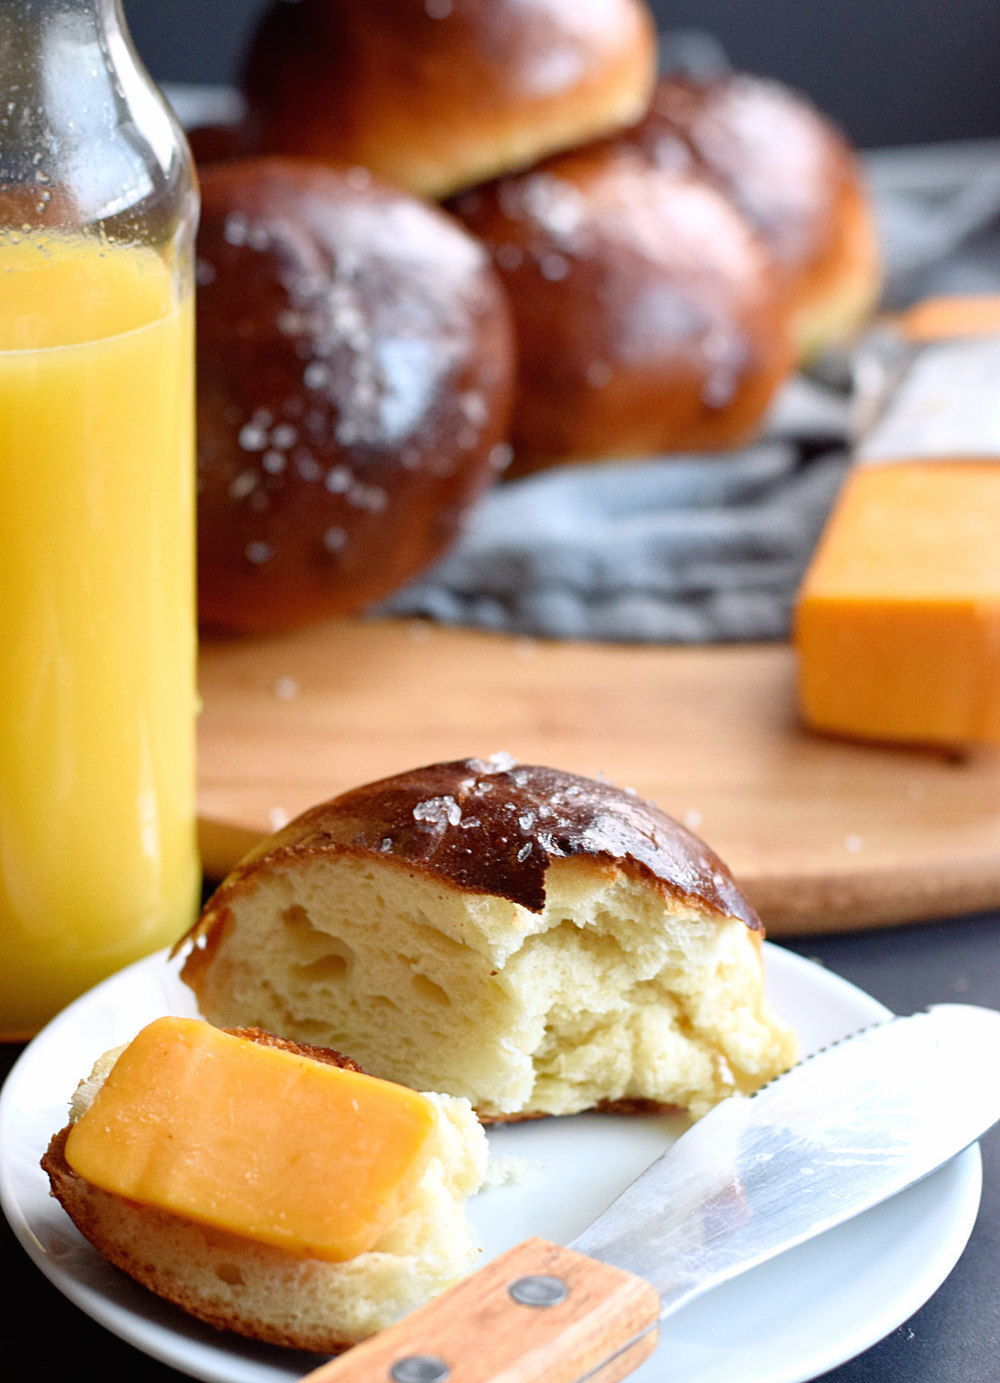 Cheddar Soft Pretzel Buns – soft, fluffy, pretzel rolls filled with cheddar cheese and brushed with melted butter. So, so good! | trufflesandtrends.com